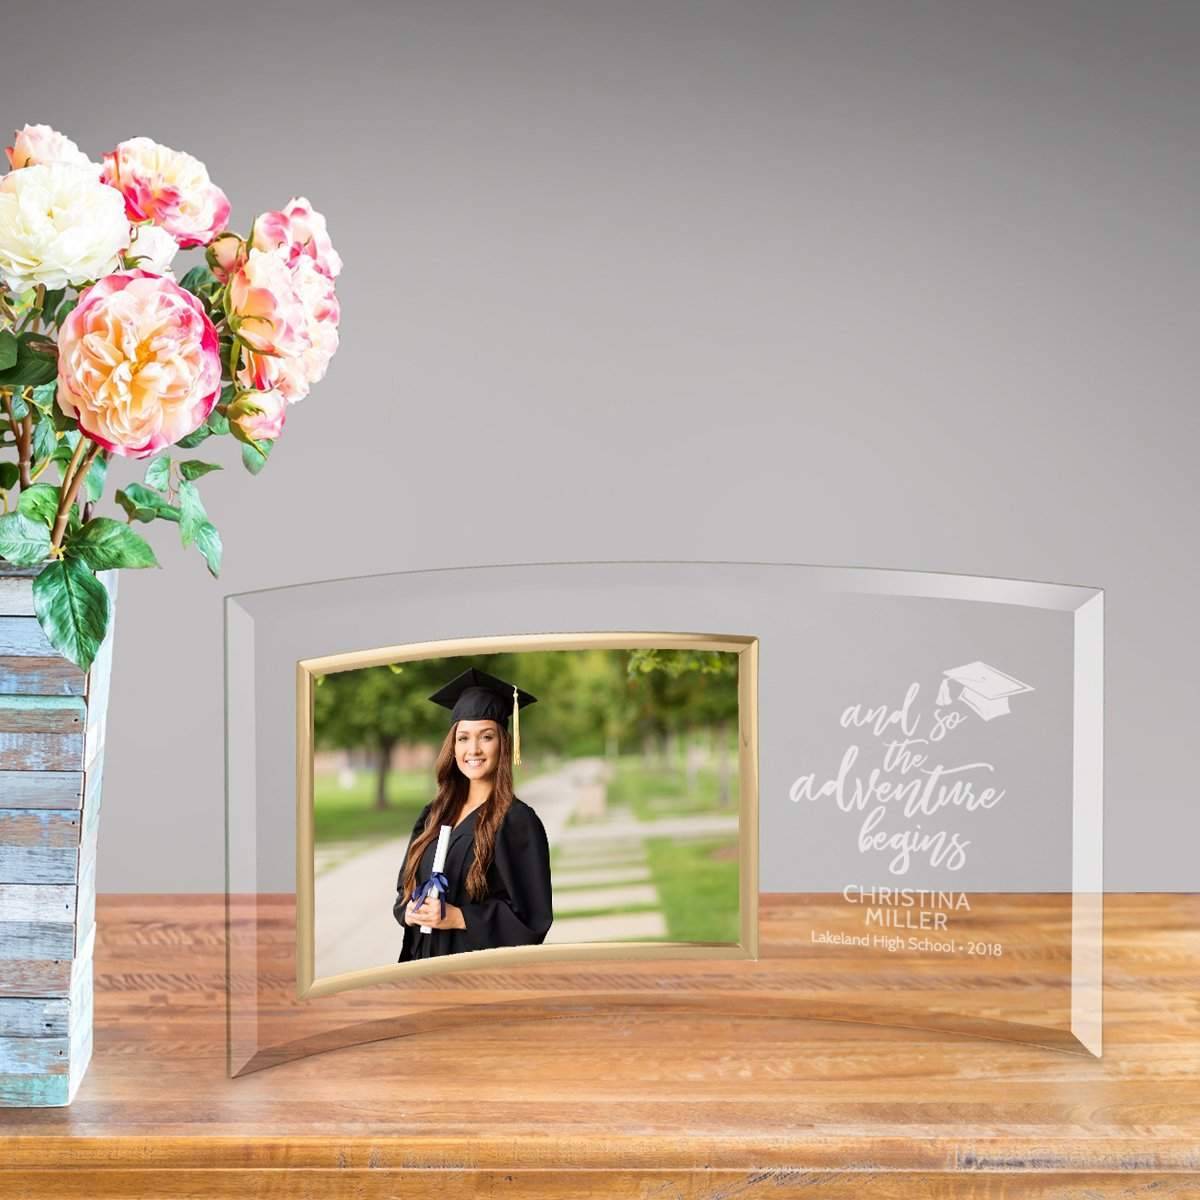 10 Perfect Personalized Graduation Gifts for 2019 8